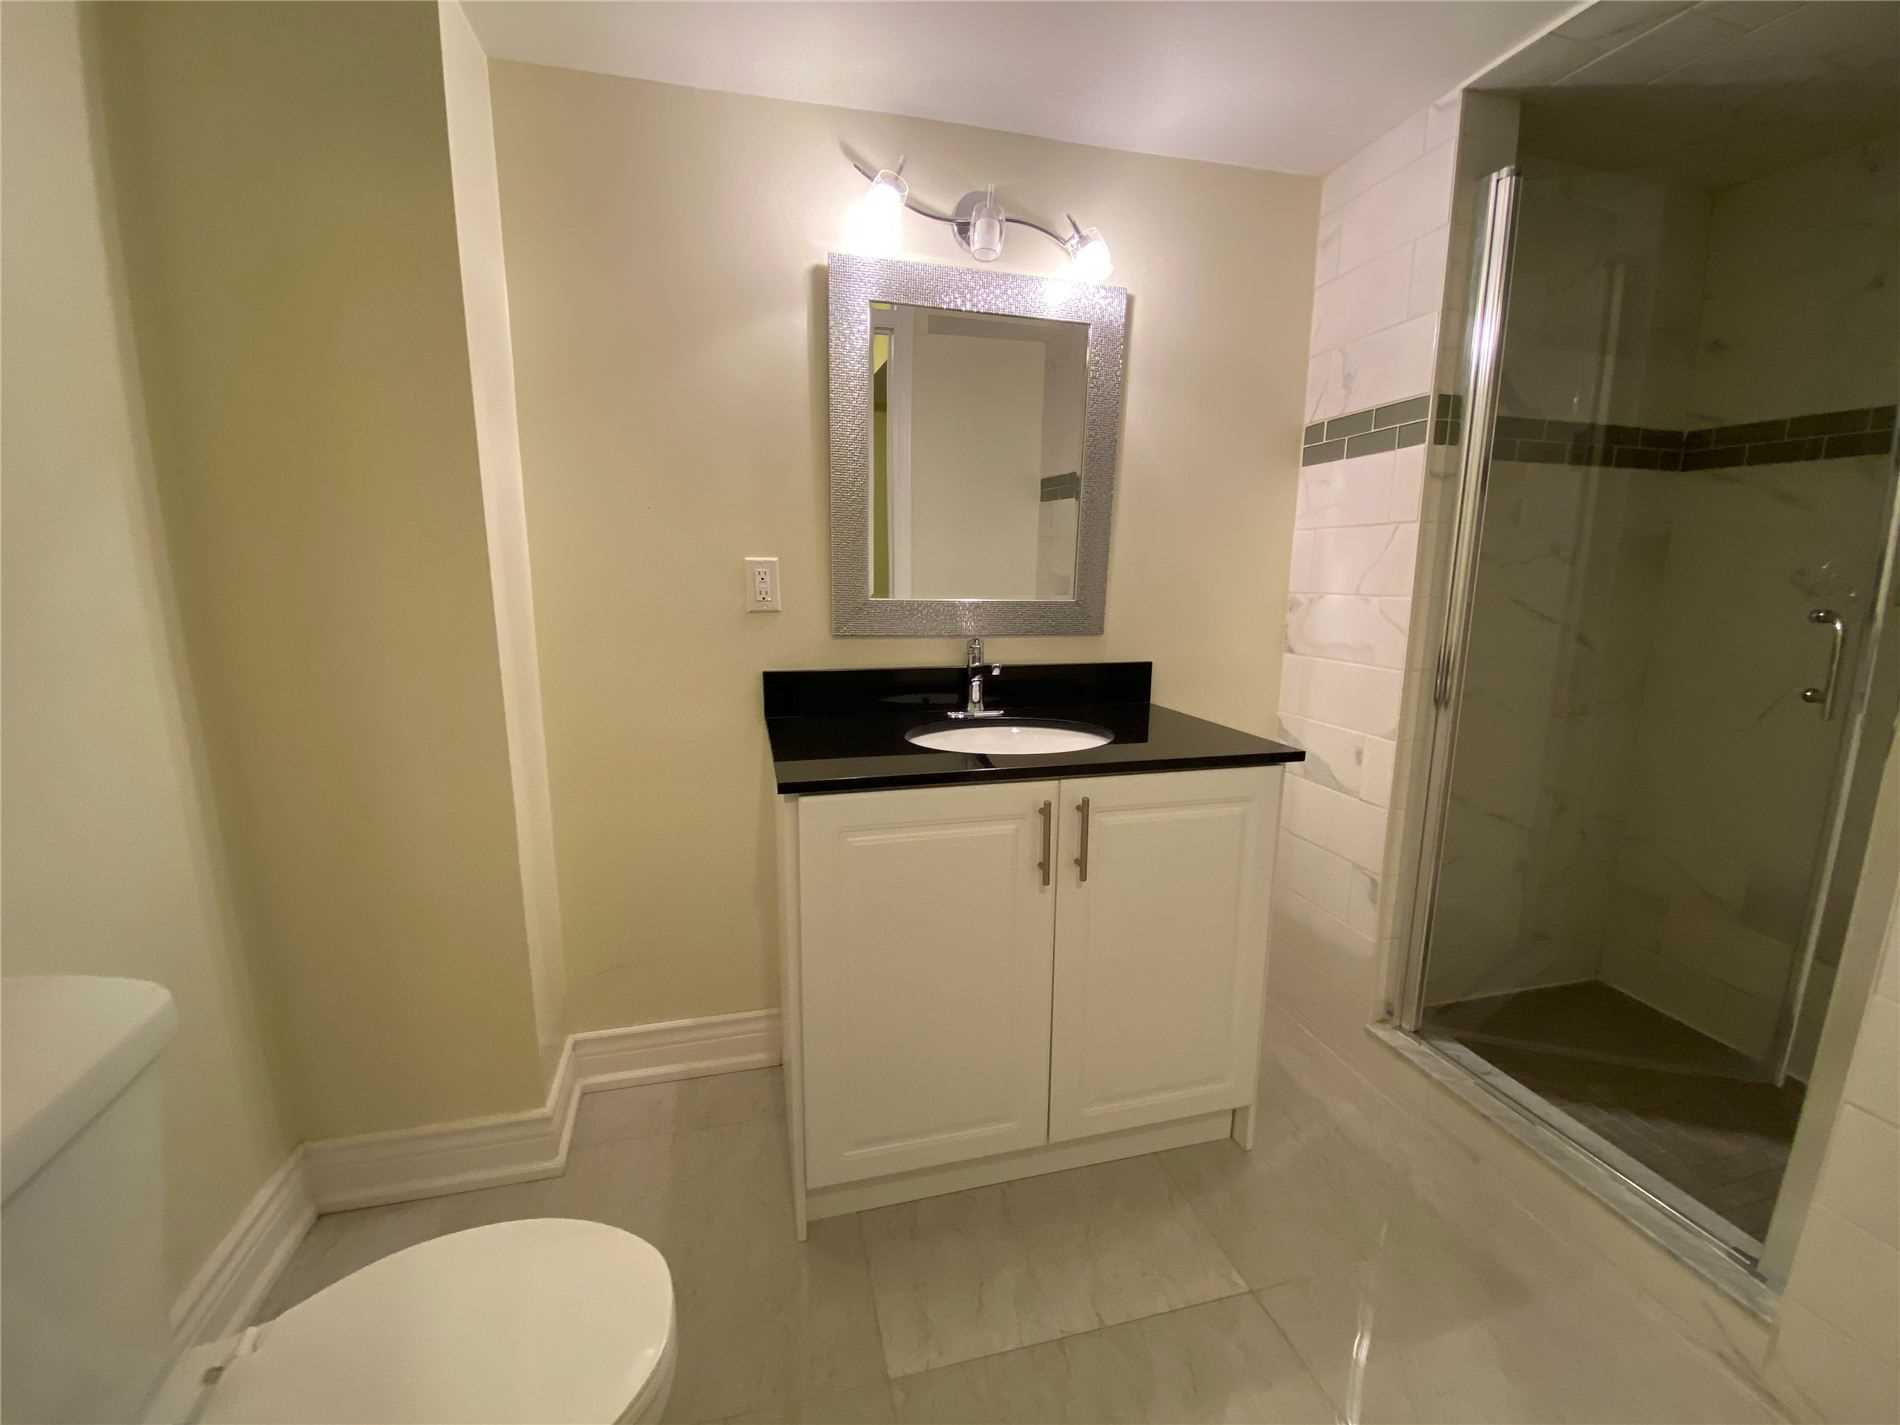 Image 6 of 8 showing inside of 0 Bedroom Semi-Detached Apartment for Lease at 2 Maroon Dr, Richmond Hill L4E5B4